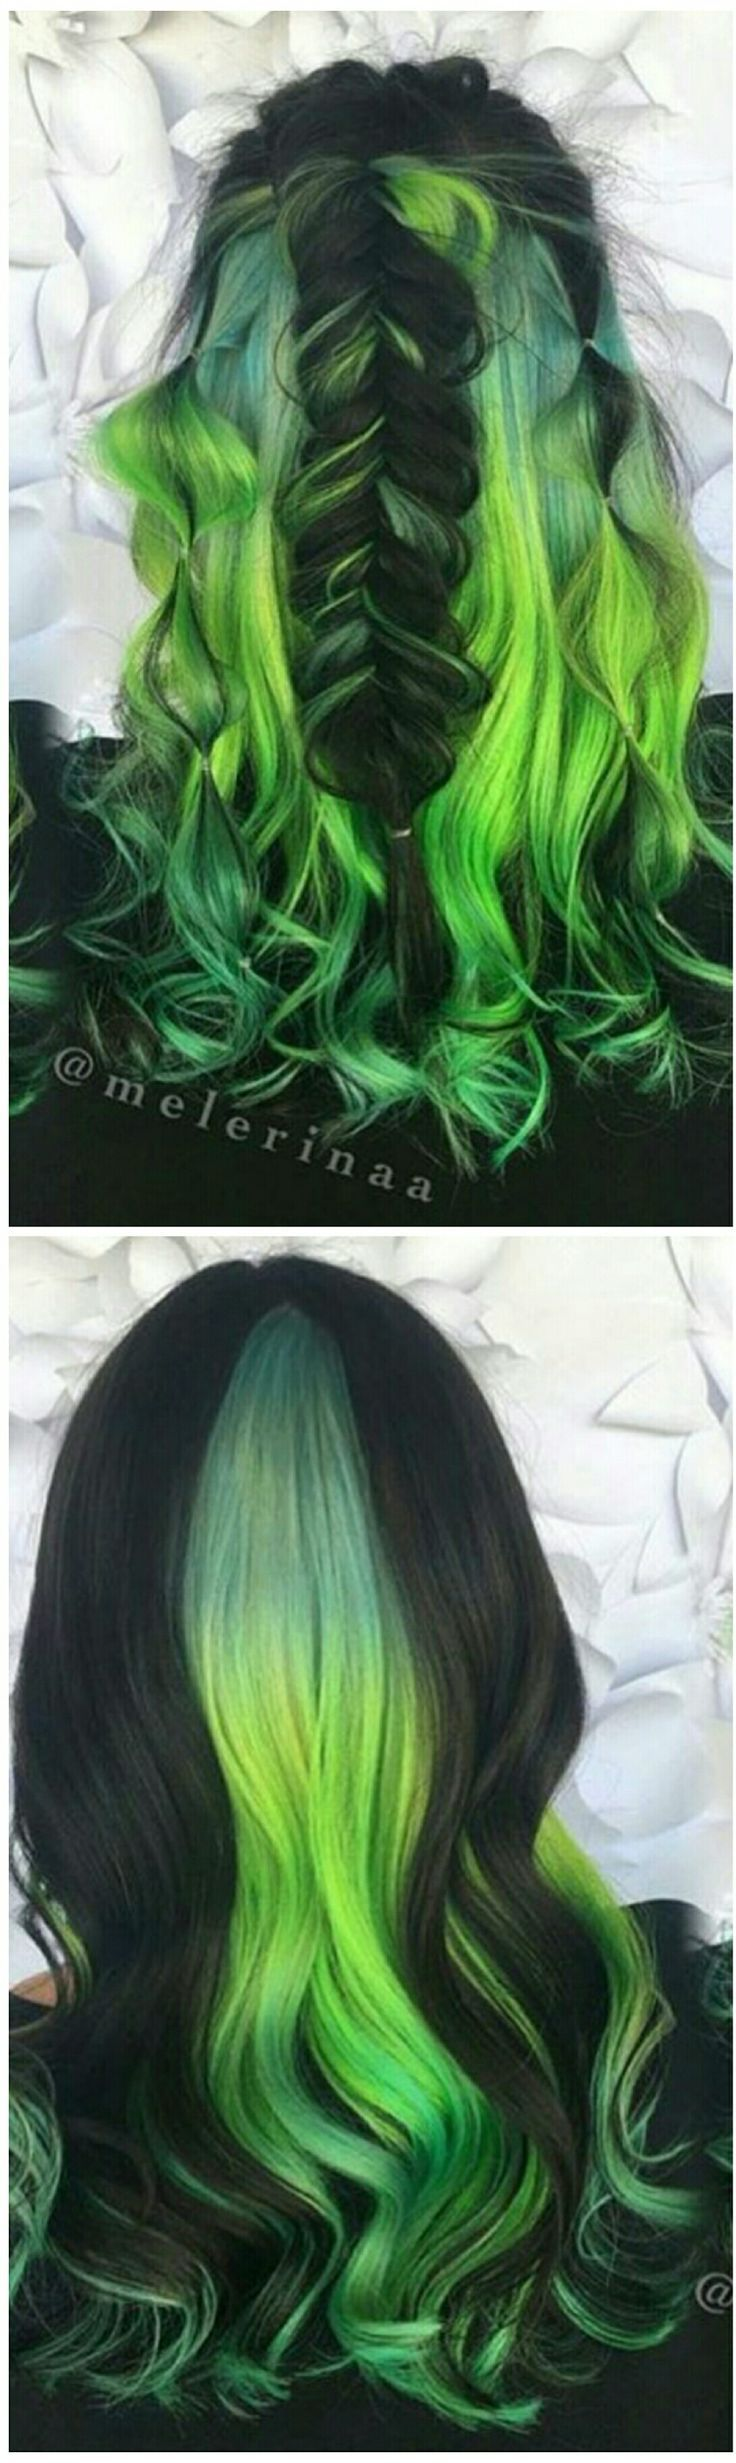 nice Green black dyed hair color inspiration...